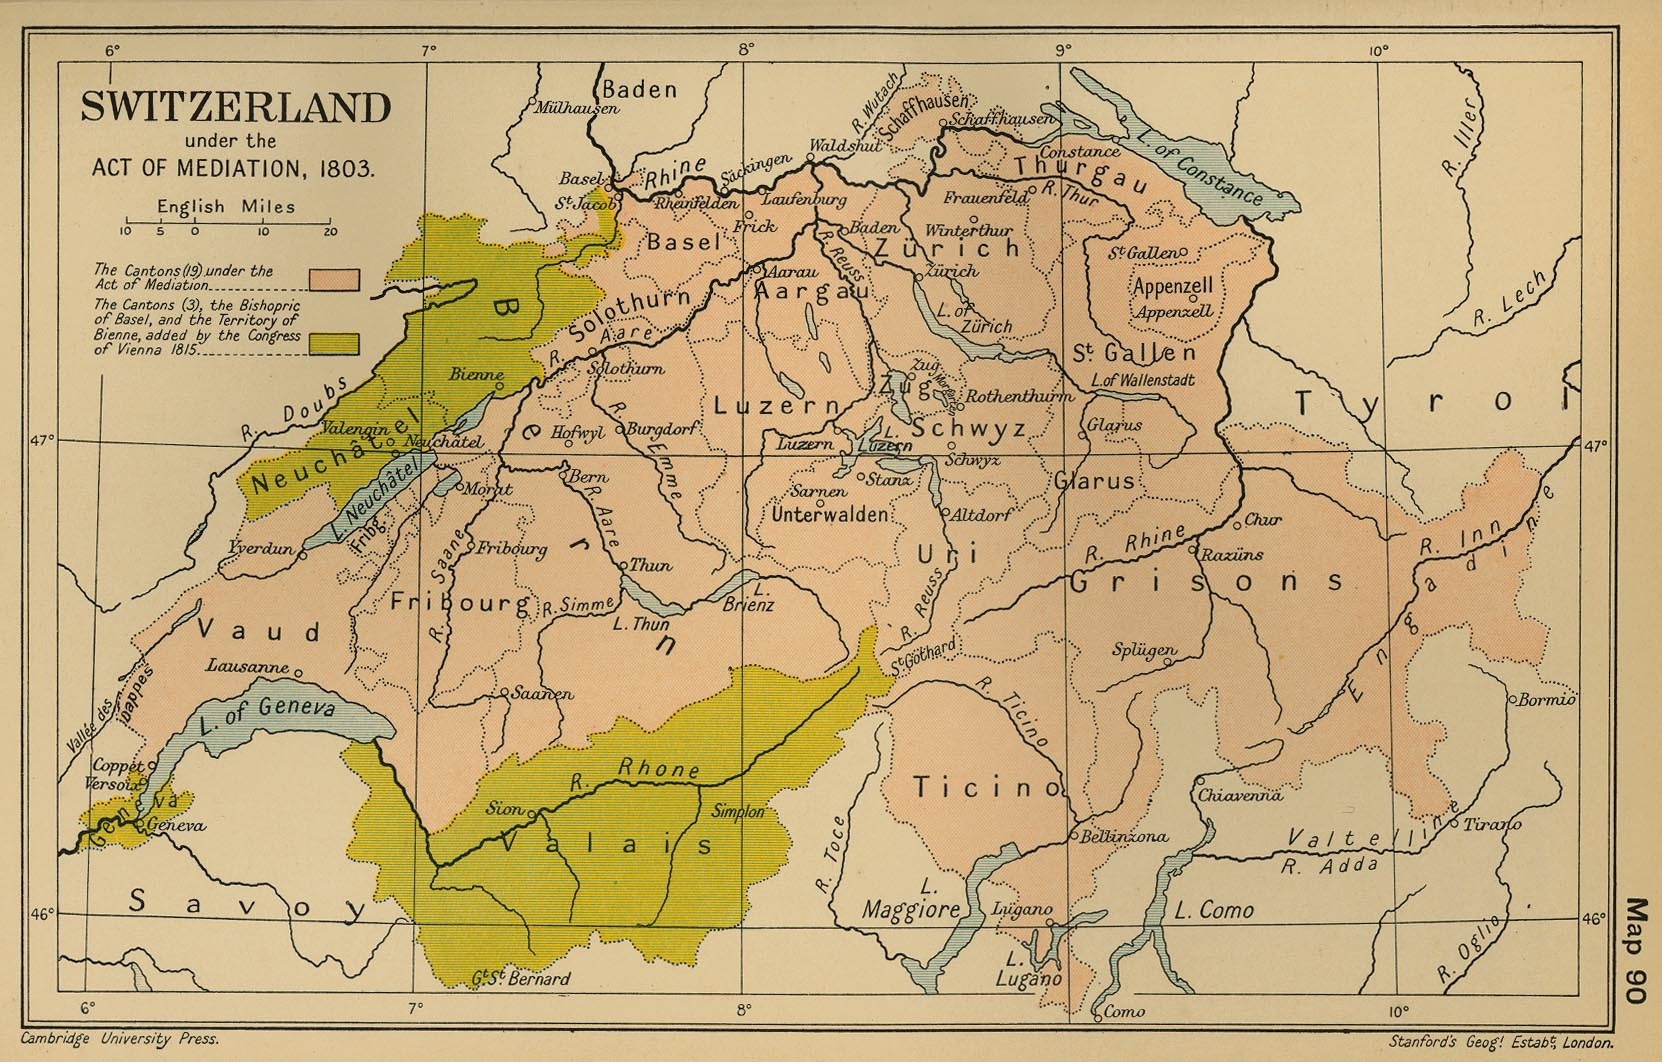 Map of Switzerland in 1803 The Mediation Act